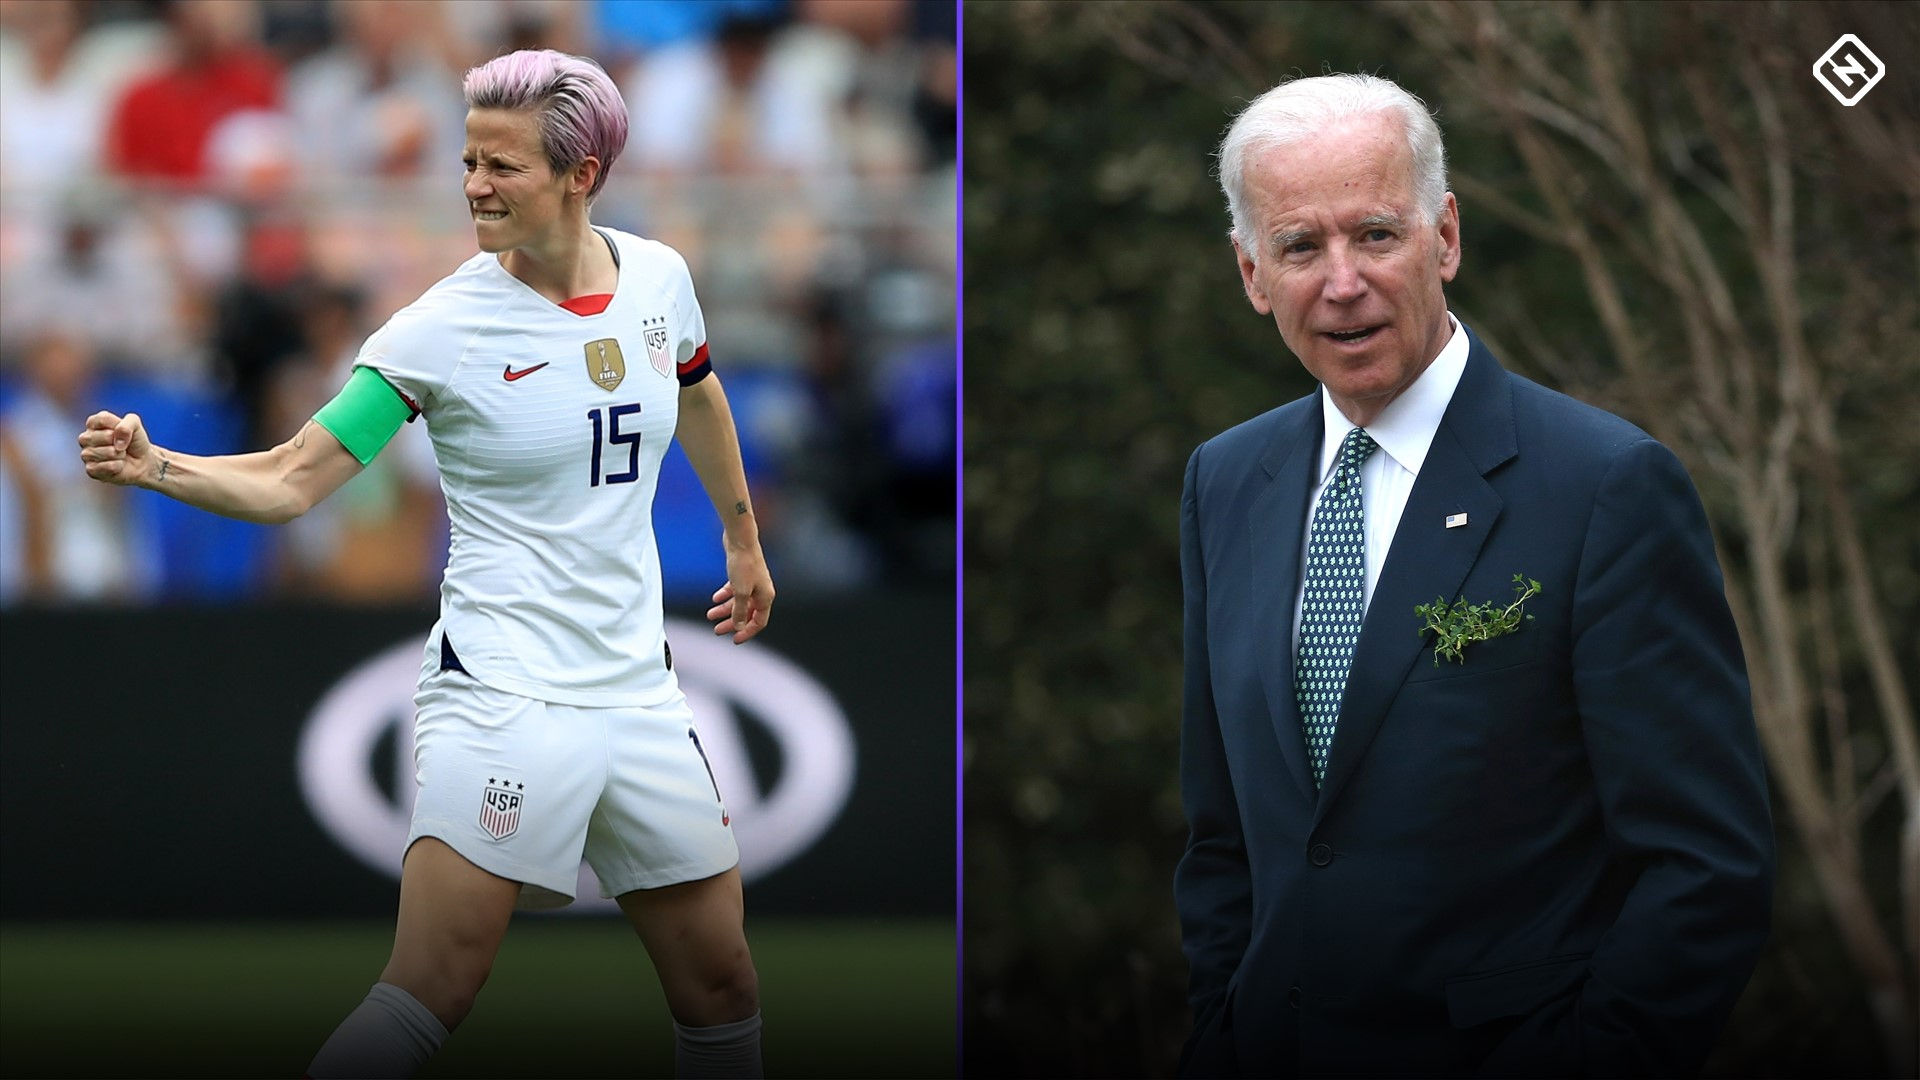 Joe Biden's message to U.S. Soccer: No men's World Cup funding in '26 without equal pay for USWNT 1